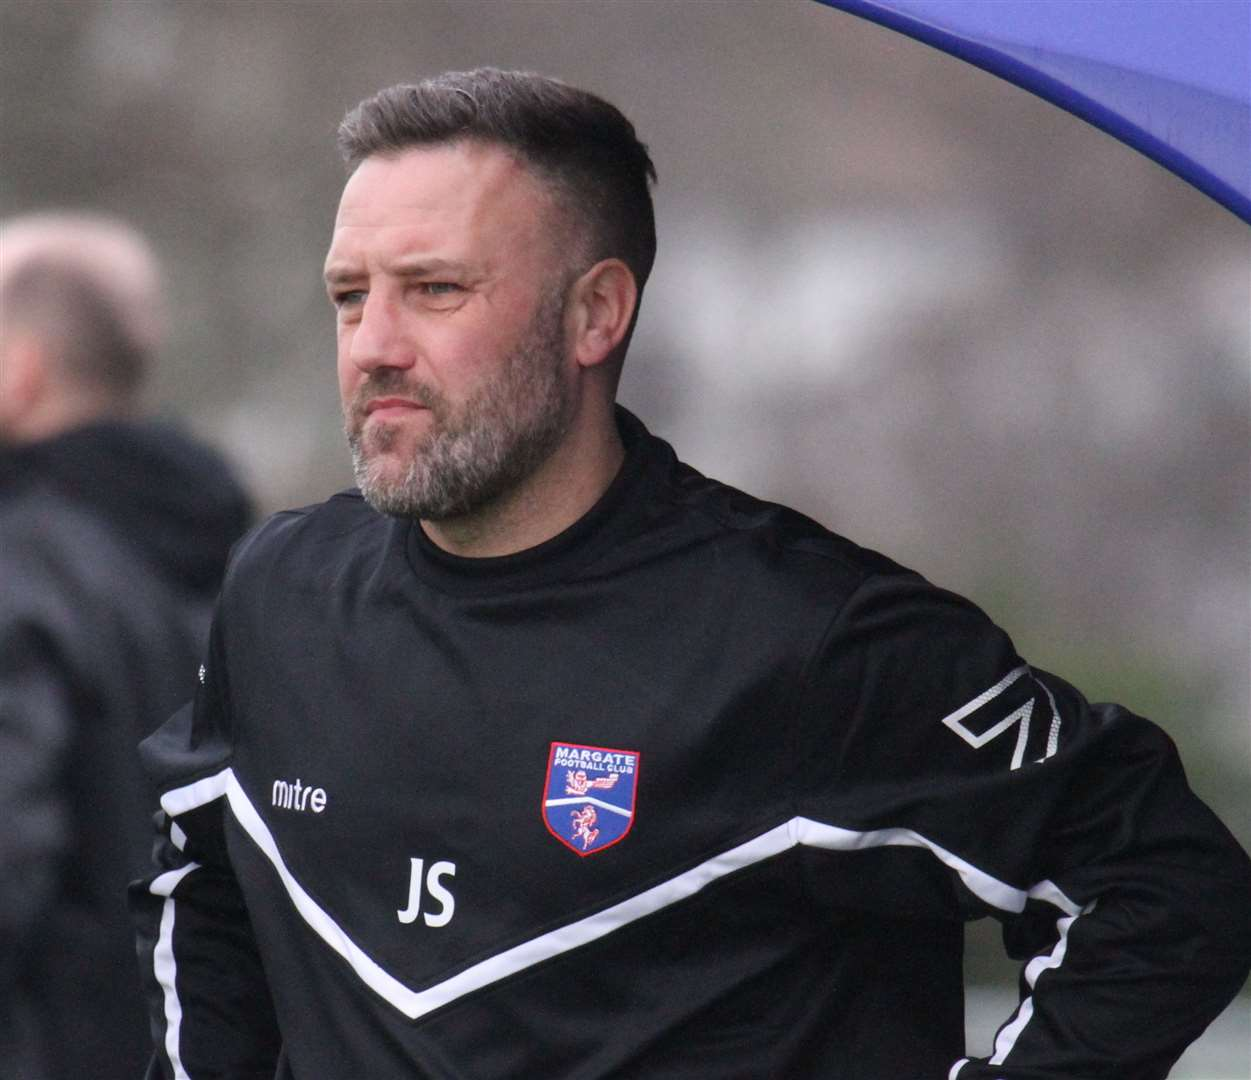 Margate manager Jay Saunders Picture: Don Walker